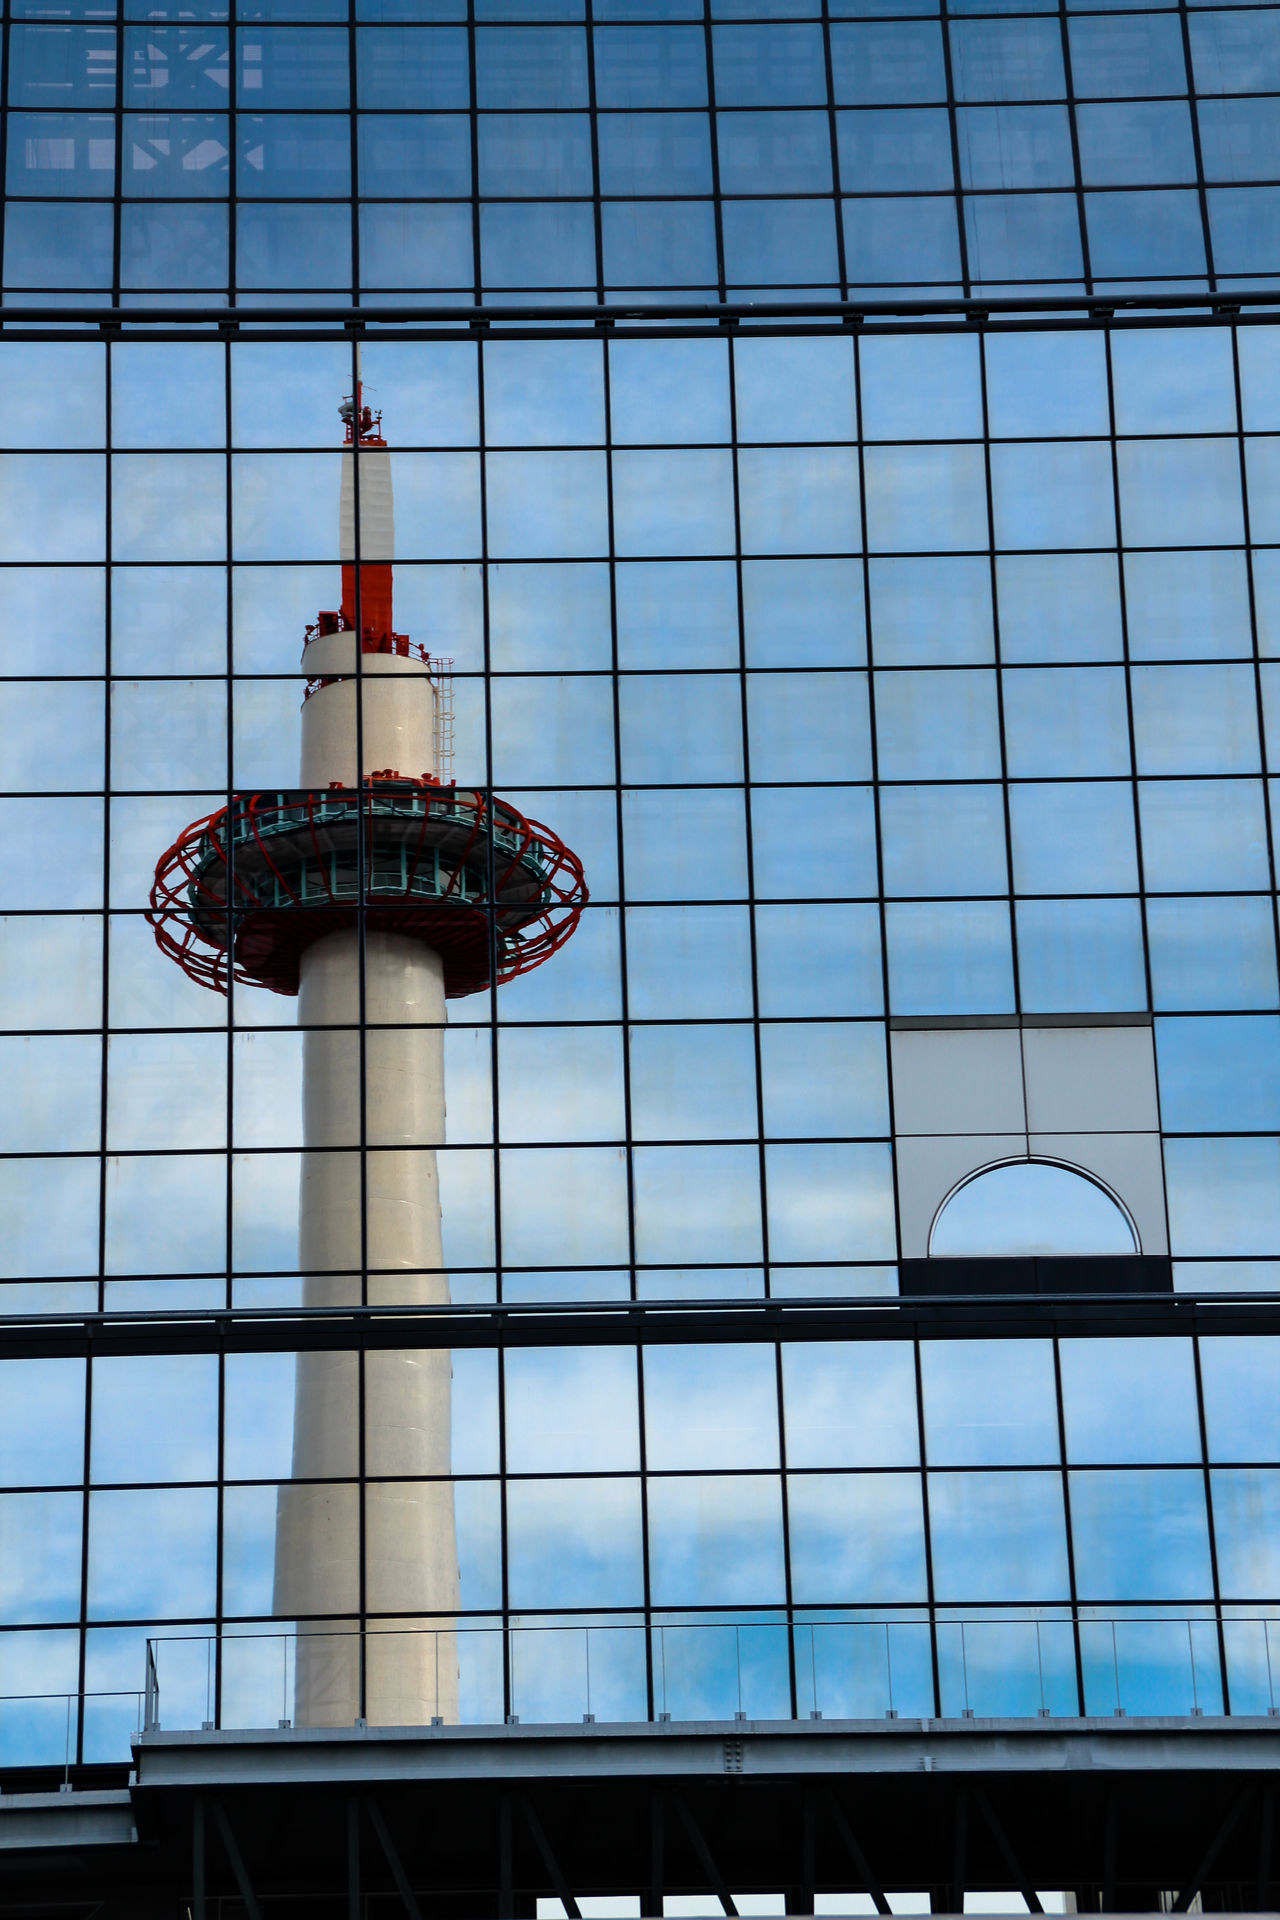 Reflection of Kyoto Tower on Kyoto Station building City Building Exterior Skyscraper Outdoors Architecture Grid No People Reflection Landmark Kyoto Tower Kyoto City Kyoto,japan